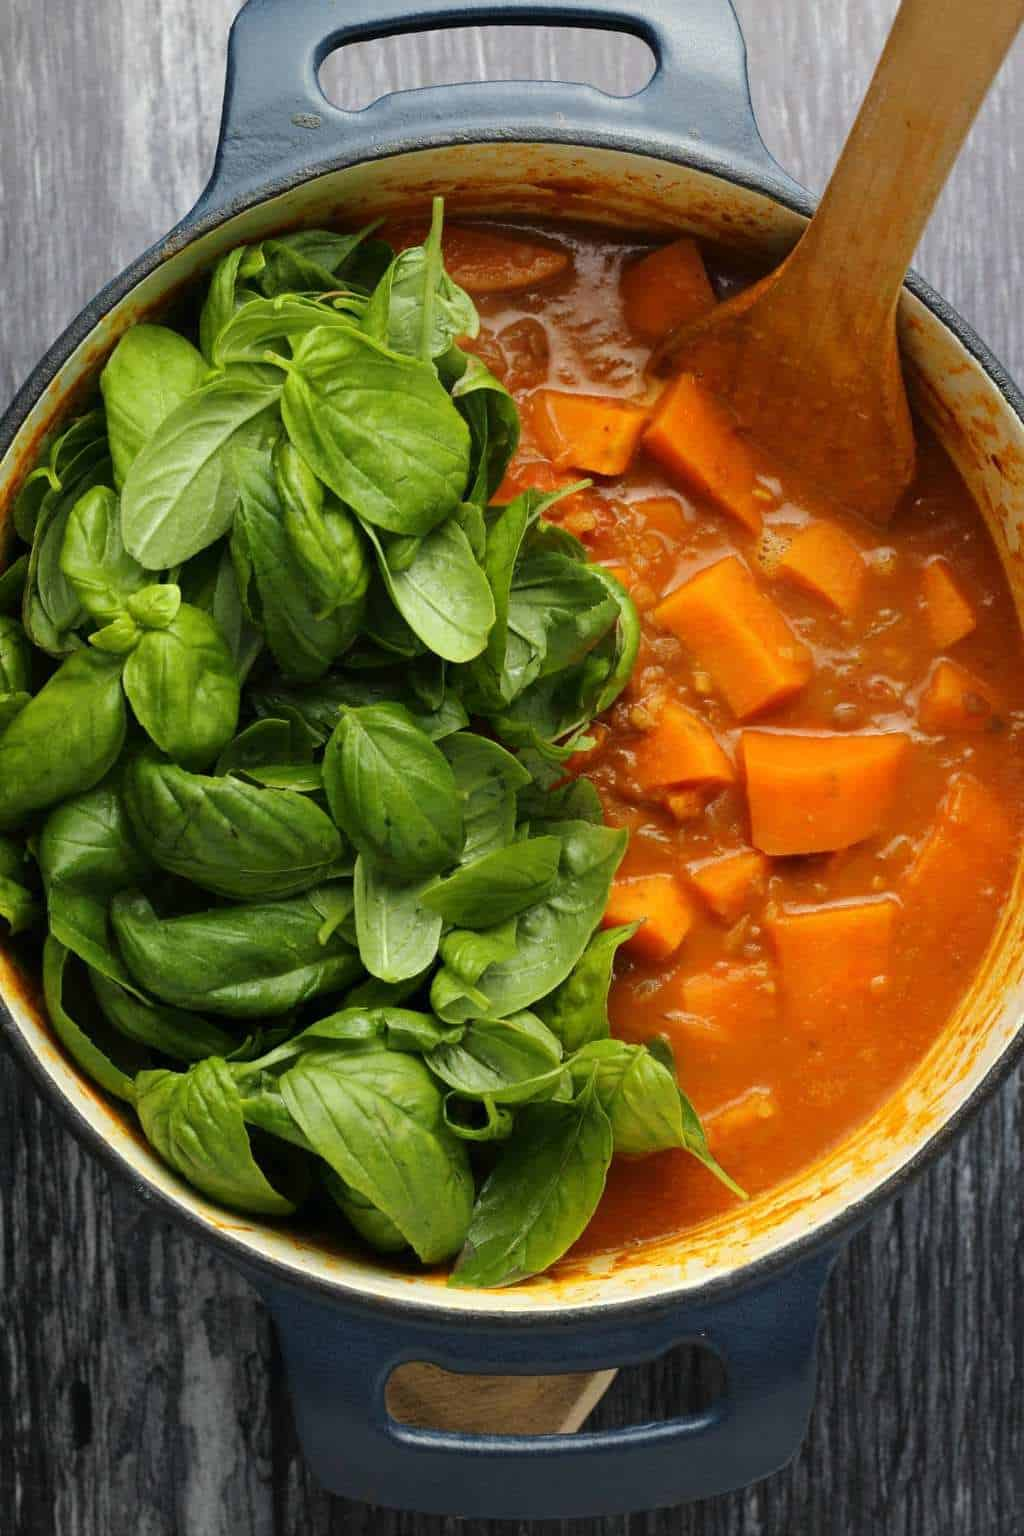 Vegan sweet potato curry and fresh basil leaves about to be stirred in, in a cast iron pot with a wooden spoon.